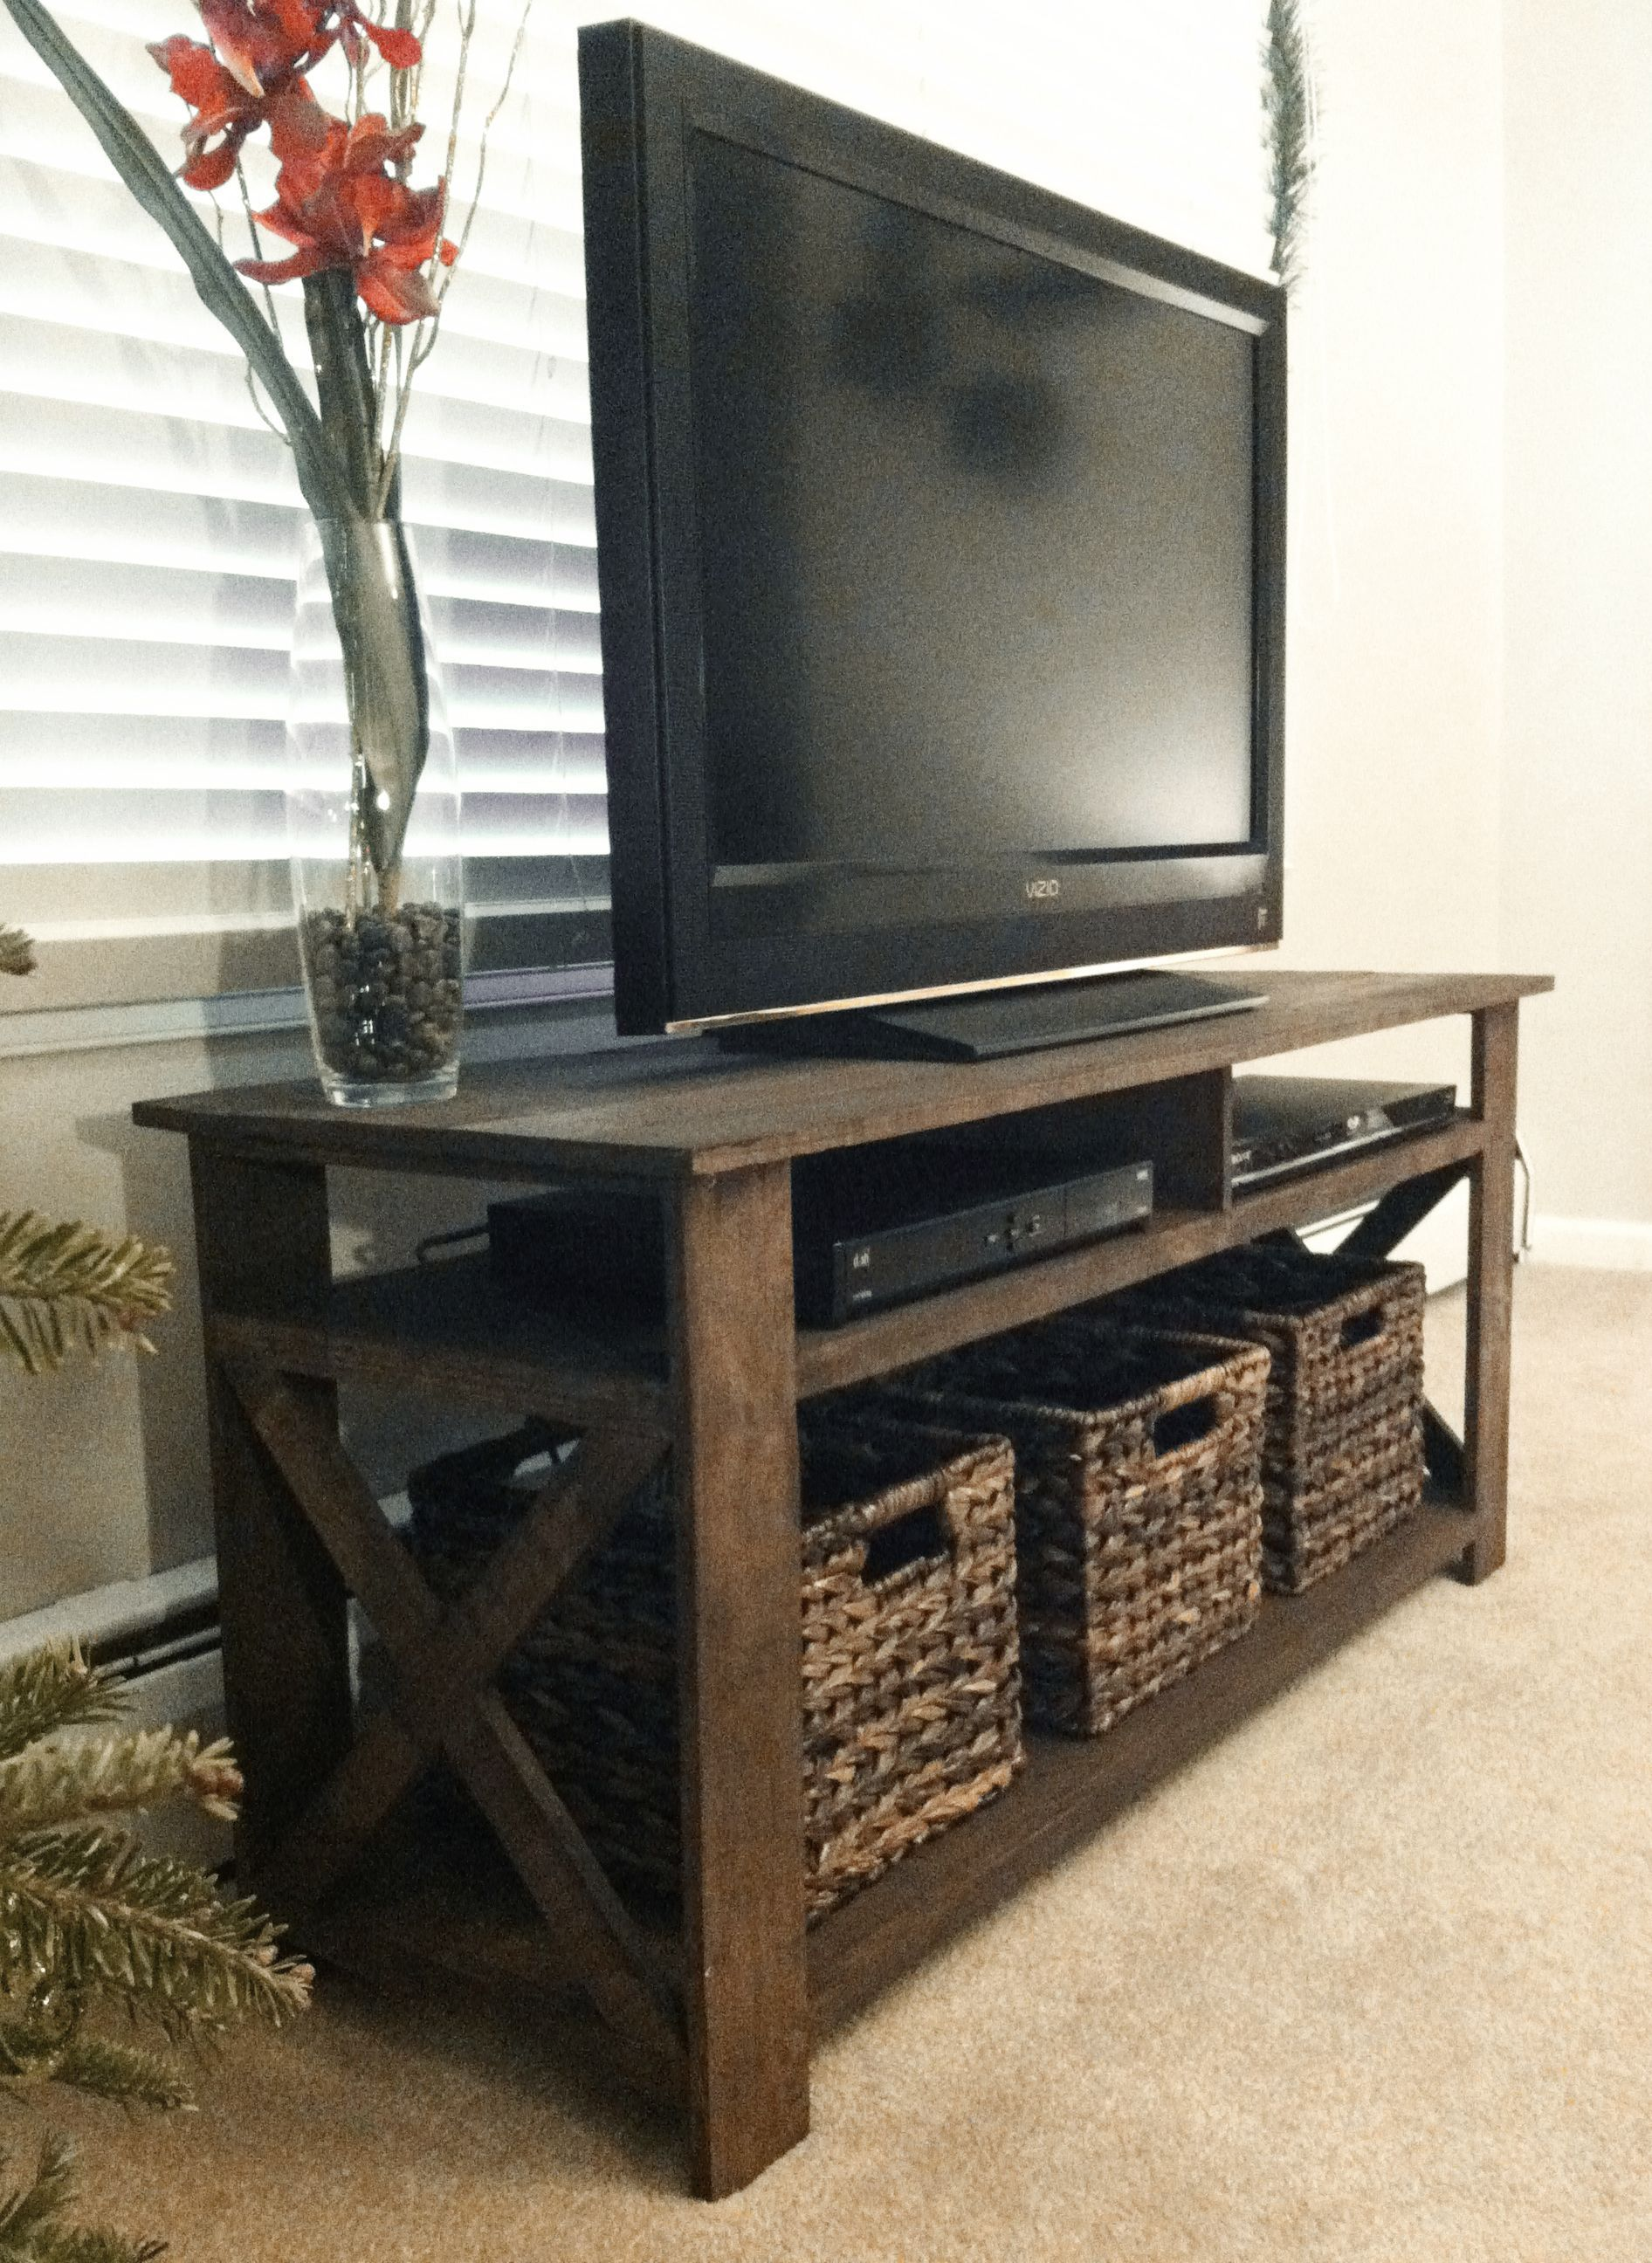 10 Diy Tv Stand Ideas You Can Try At Home Rustic Tv Stand Home